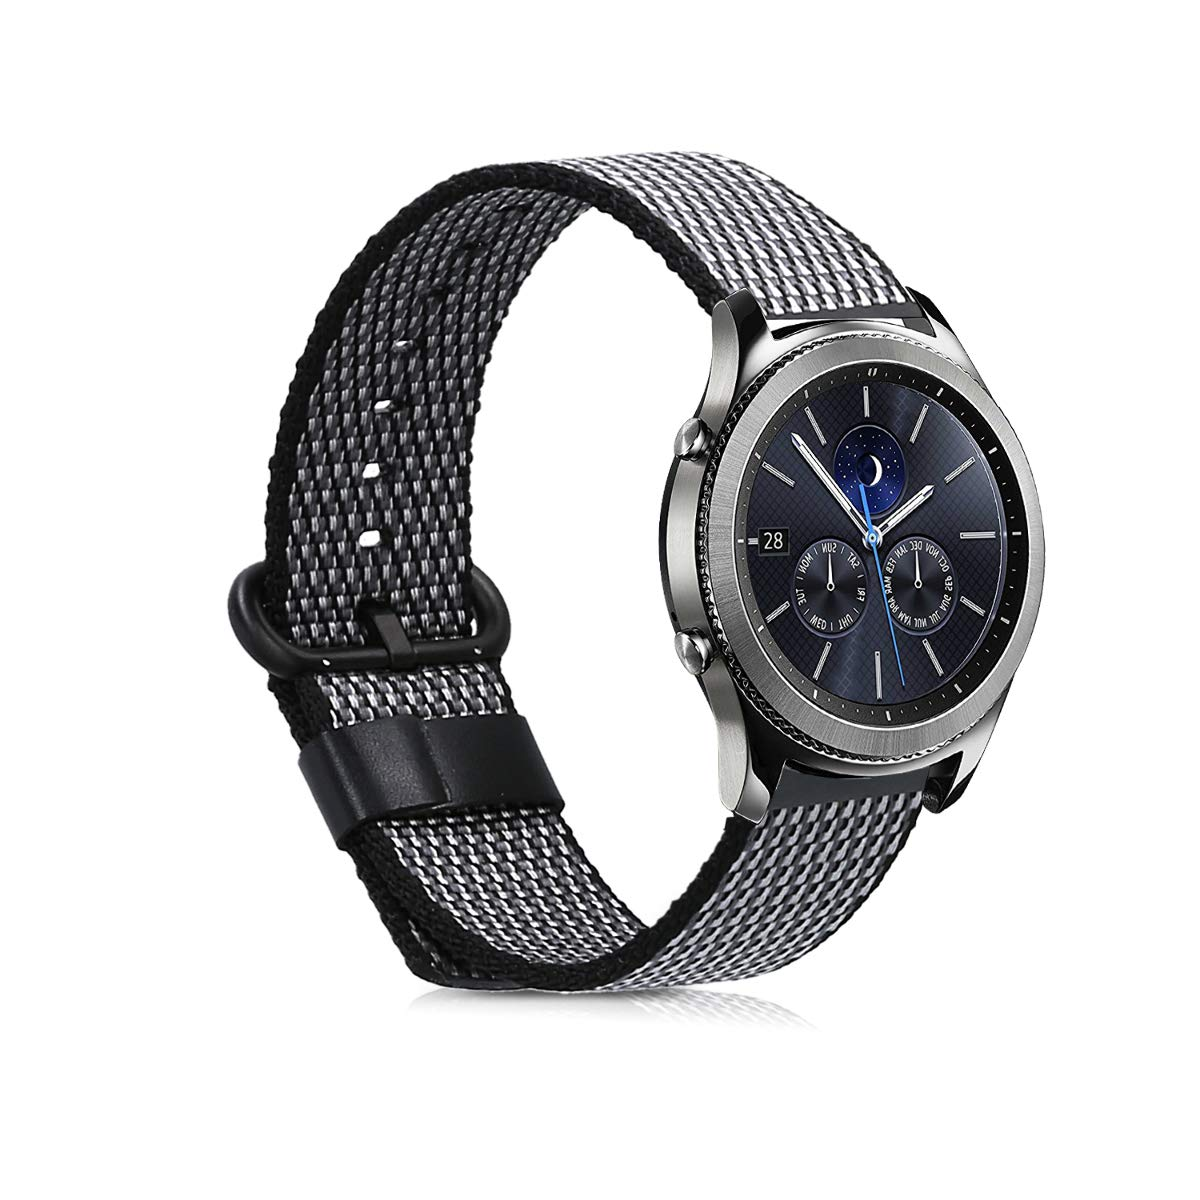 kwmobile Bracelet for Samsung Gear S3 Classic/Frontier - Nylon Watch Band Fitness Wristband in Anthracite